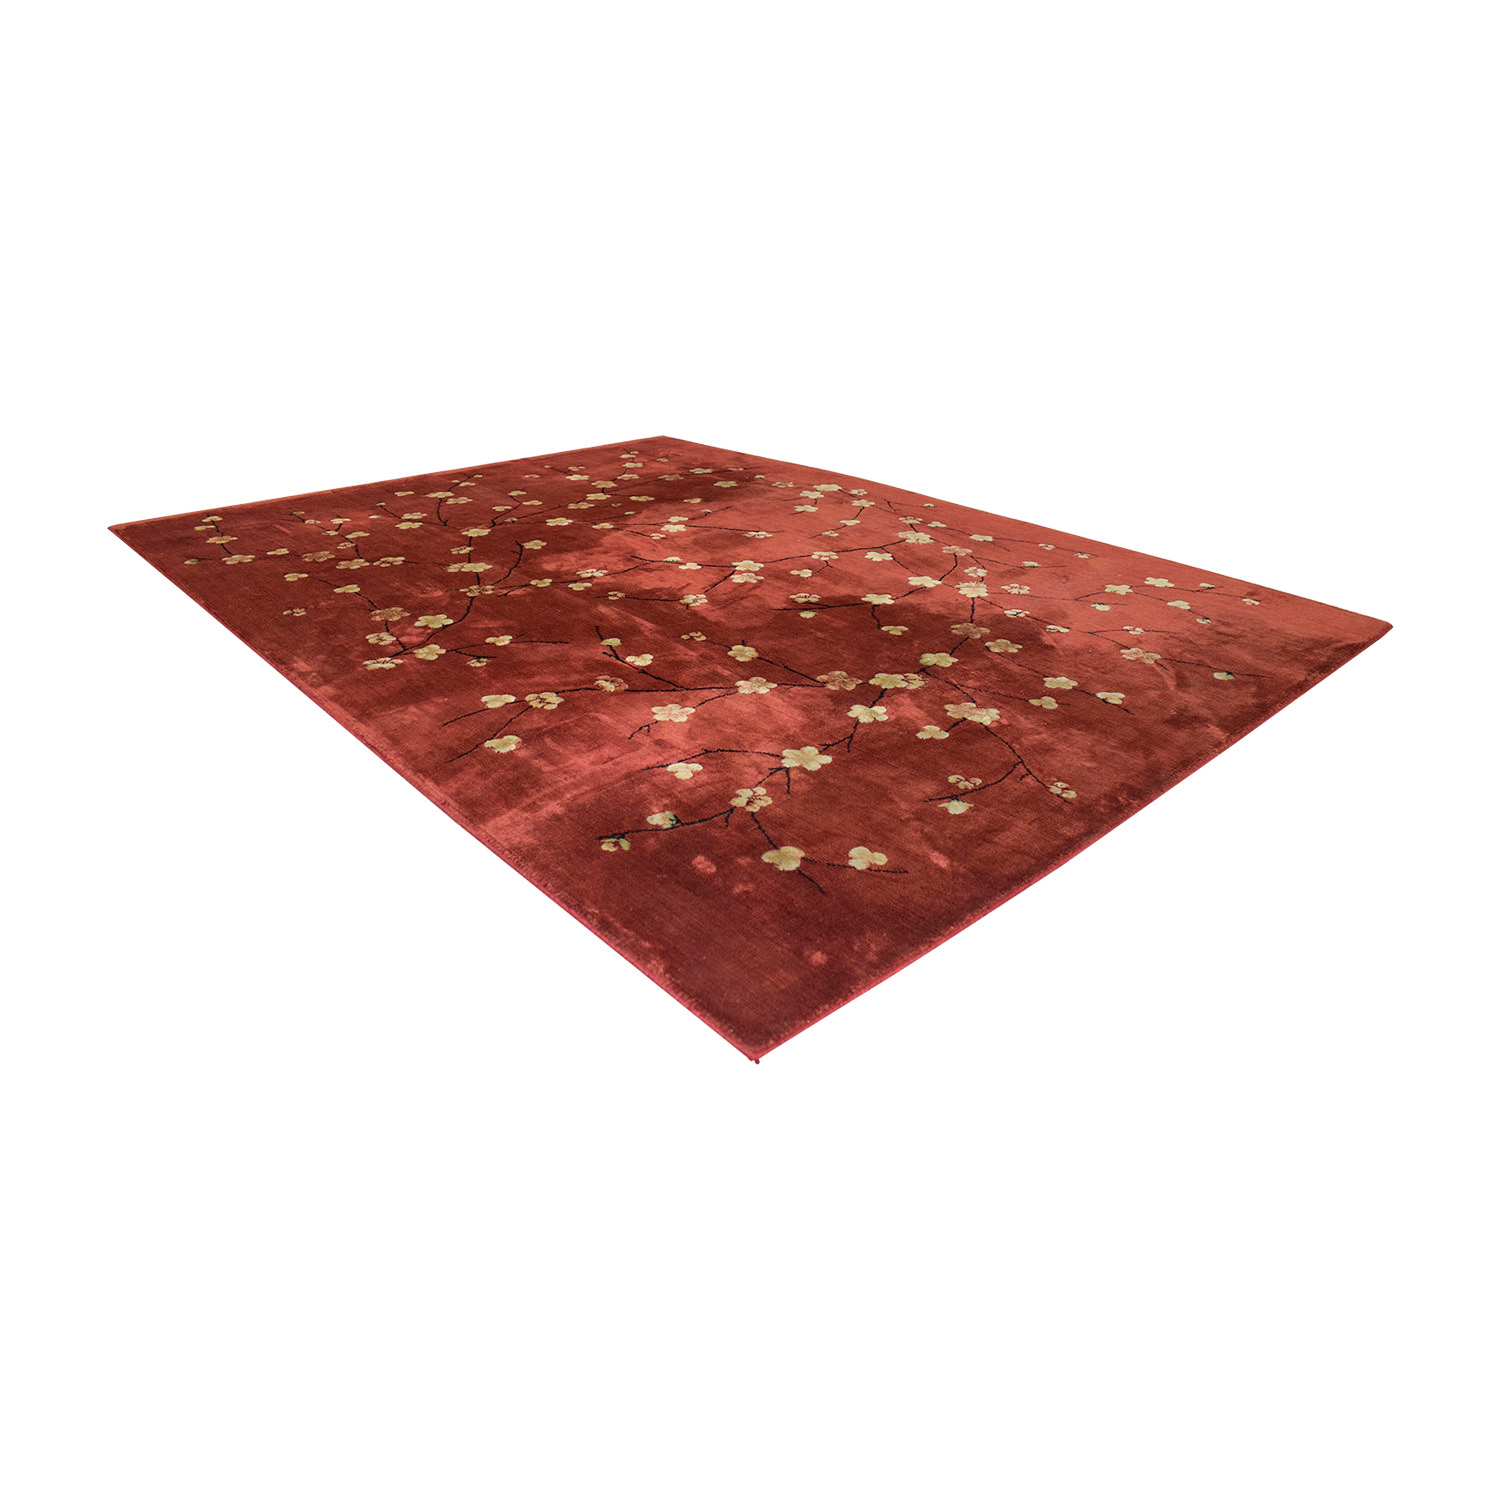 Macy's Chambord Red Floral Rug / Decor